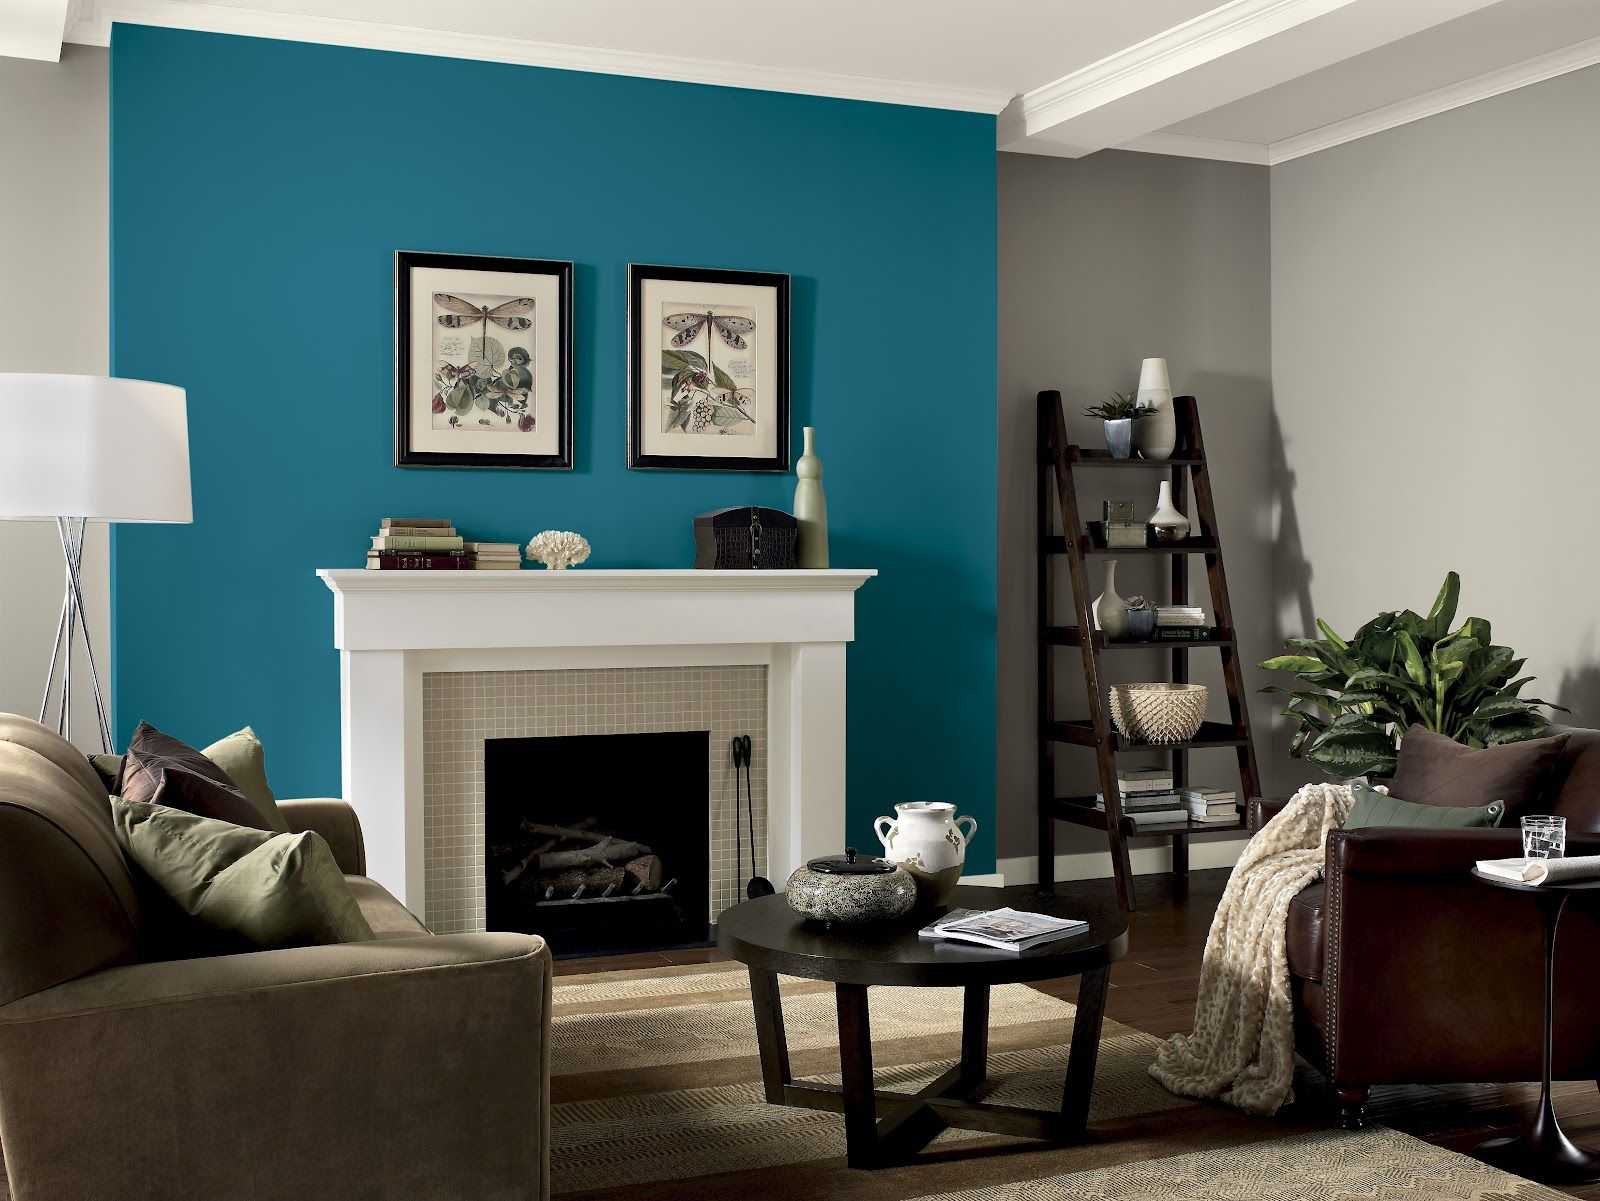 Best 25+ Teal grey living room ideas on Pinterest | Teal rooms ...